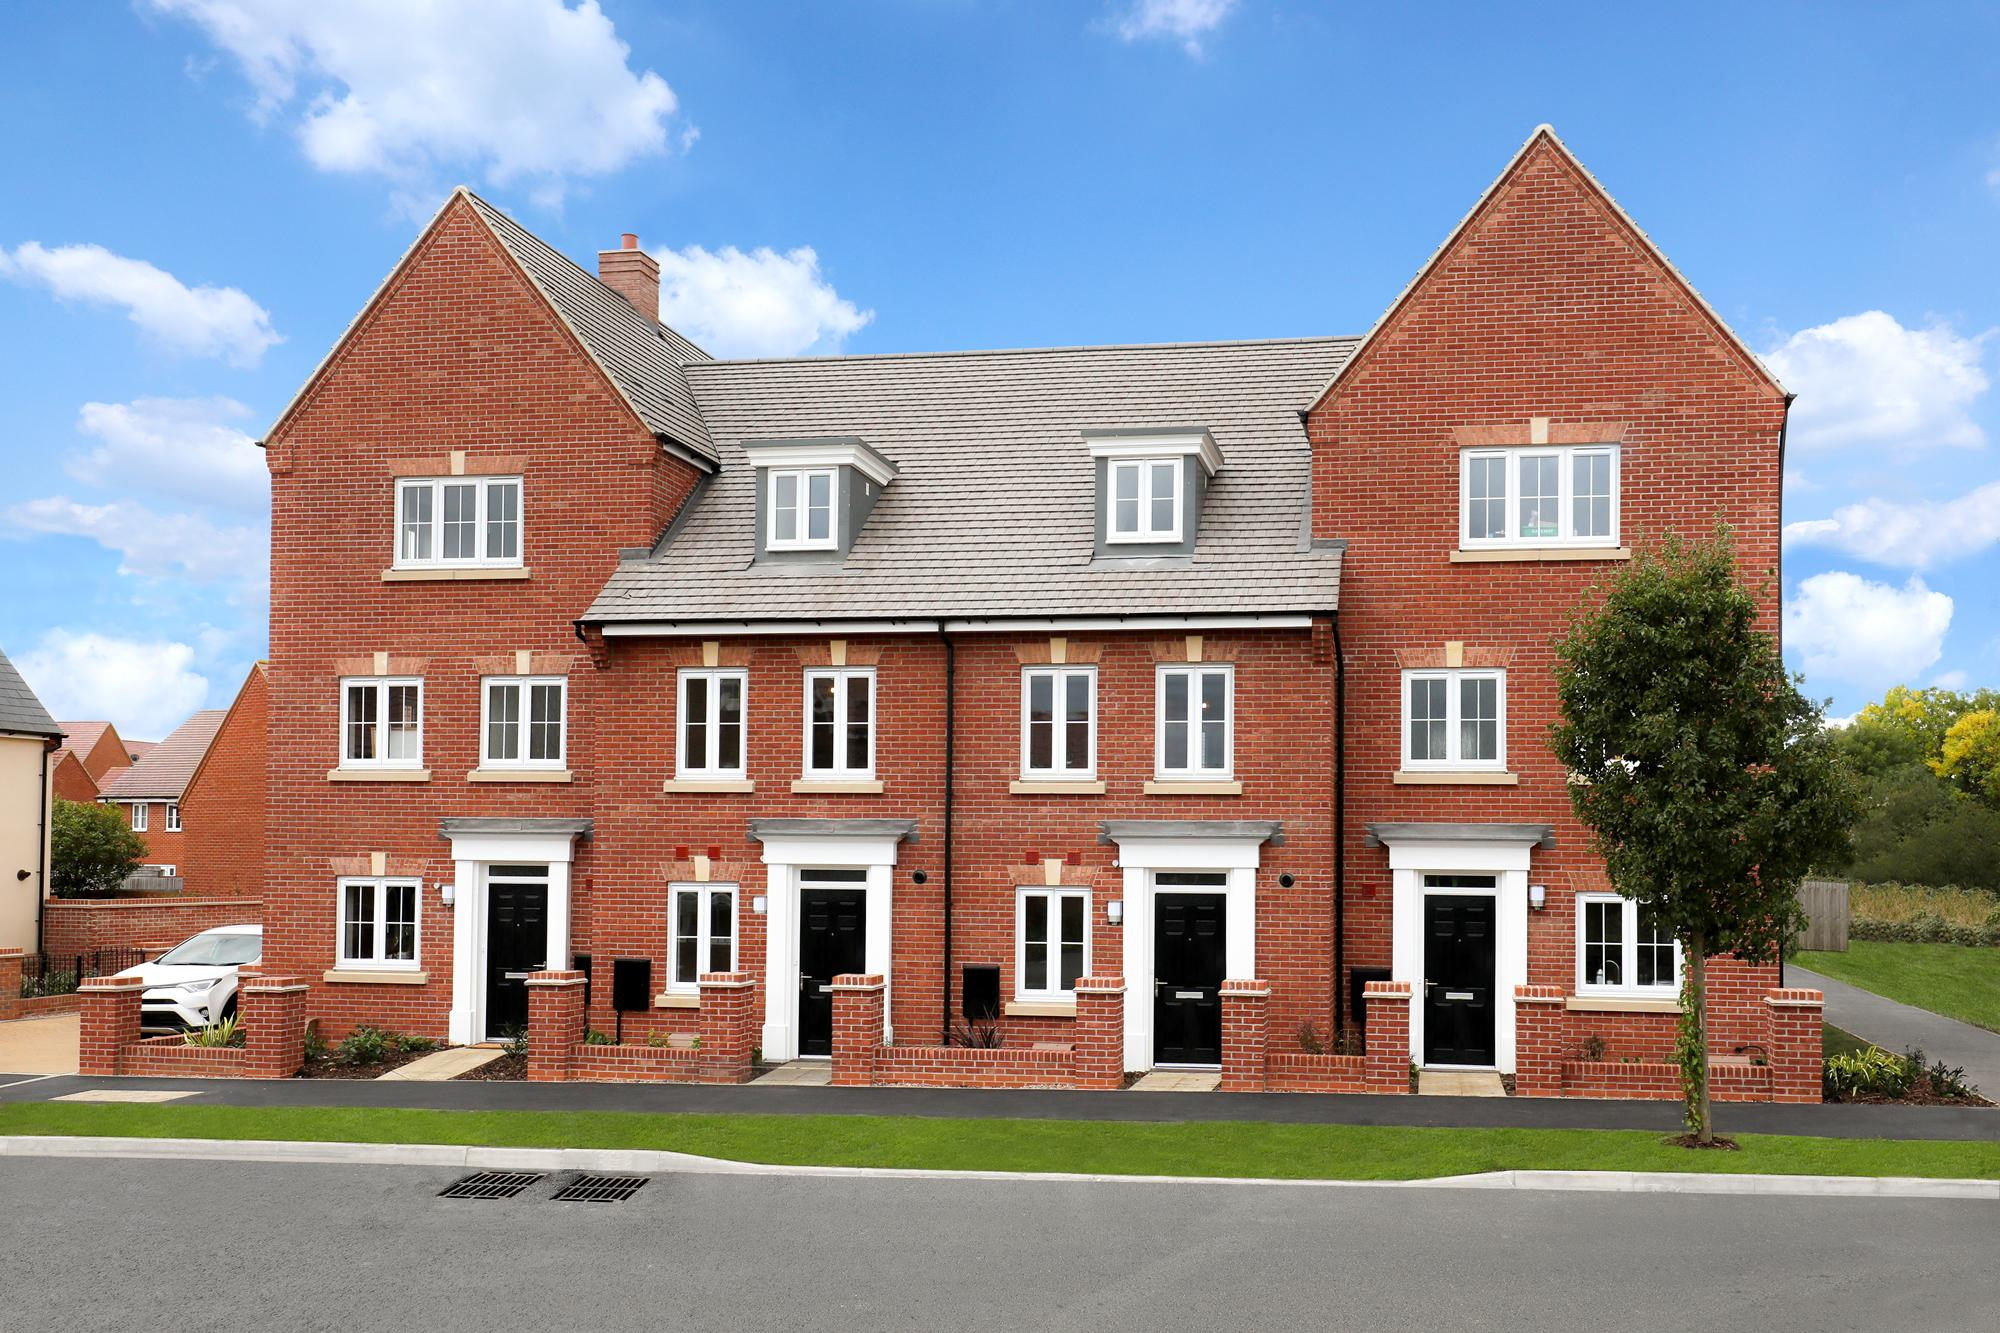 New Build Homes in Marston Moretaine